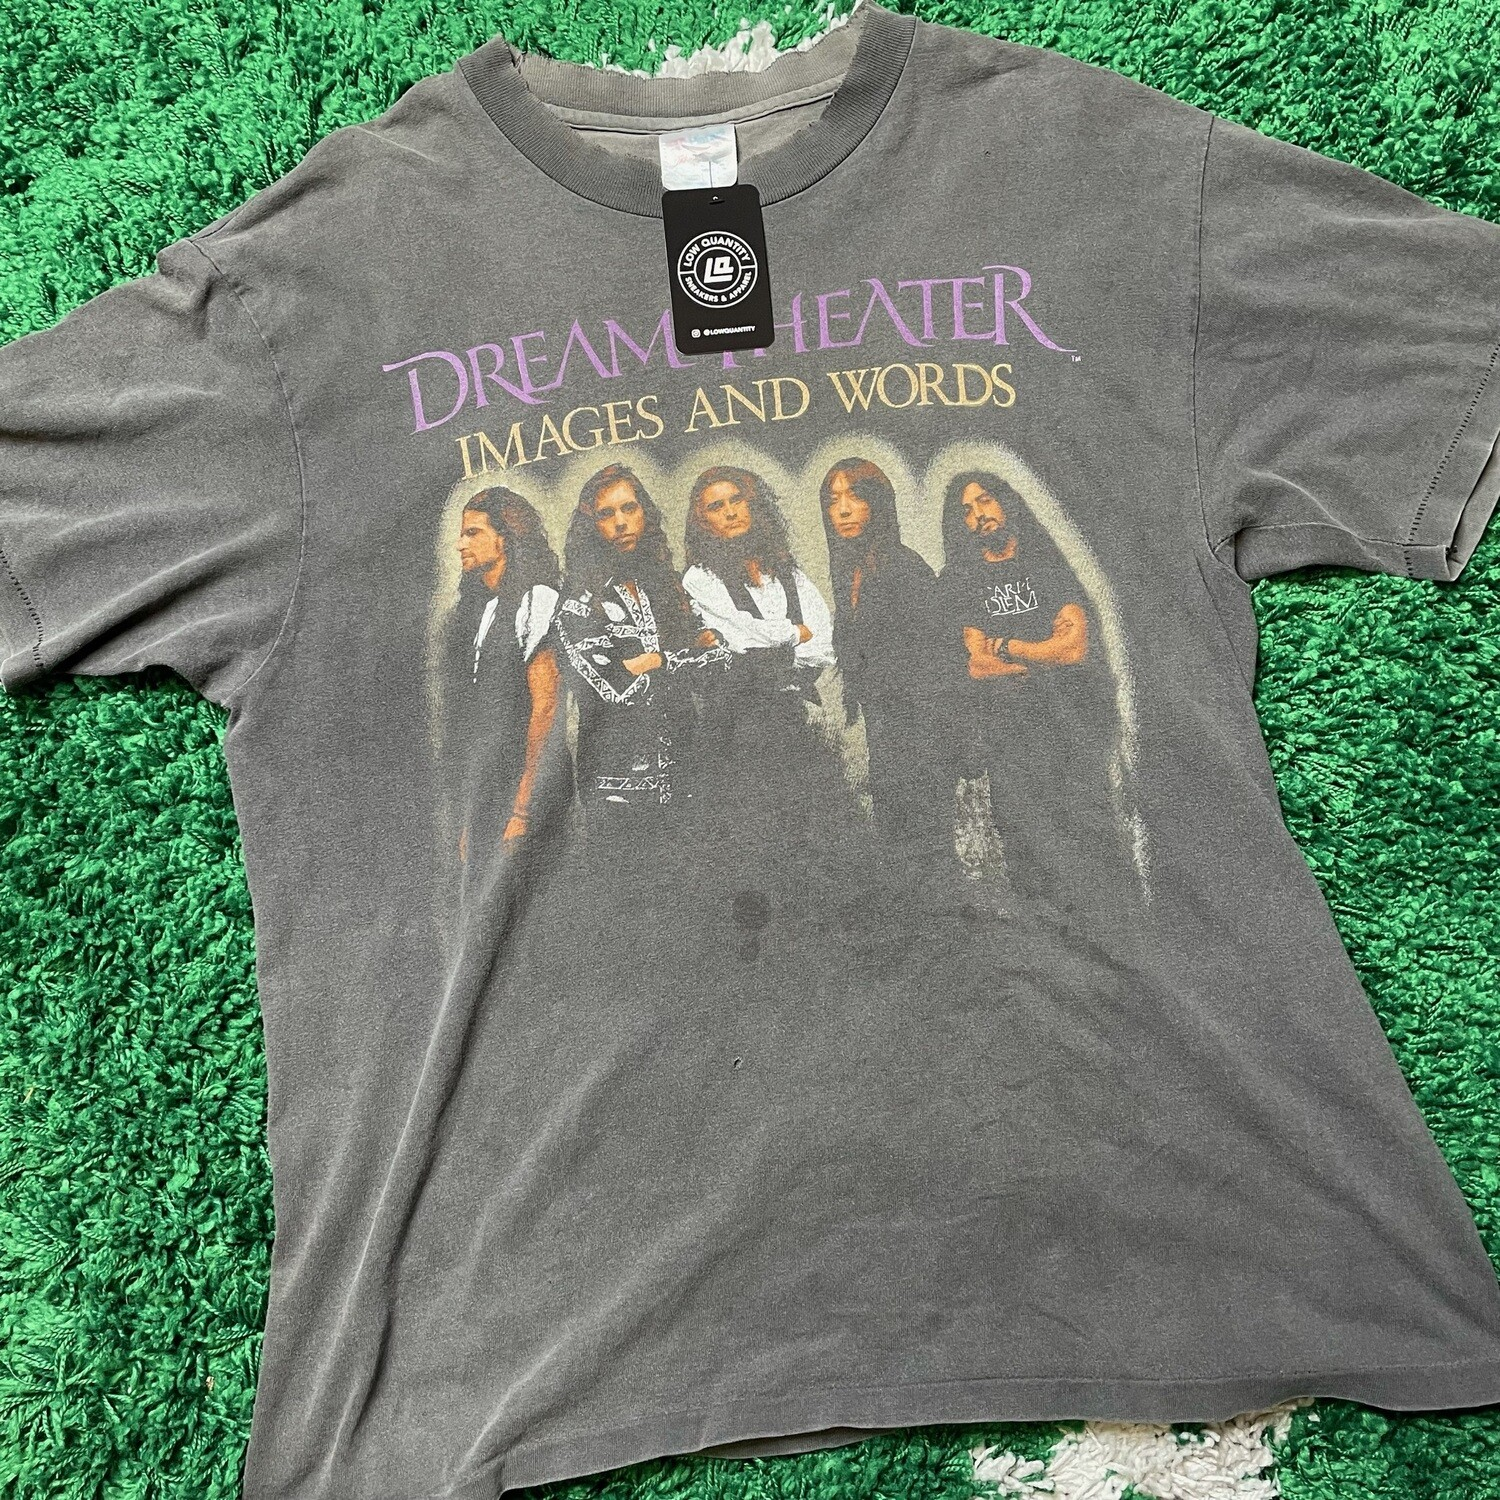 Dream Theater Images and Words Tee Size Large